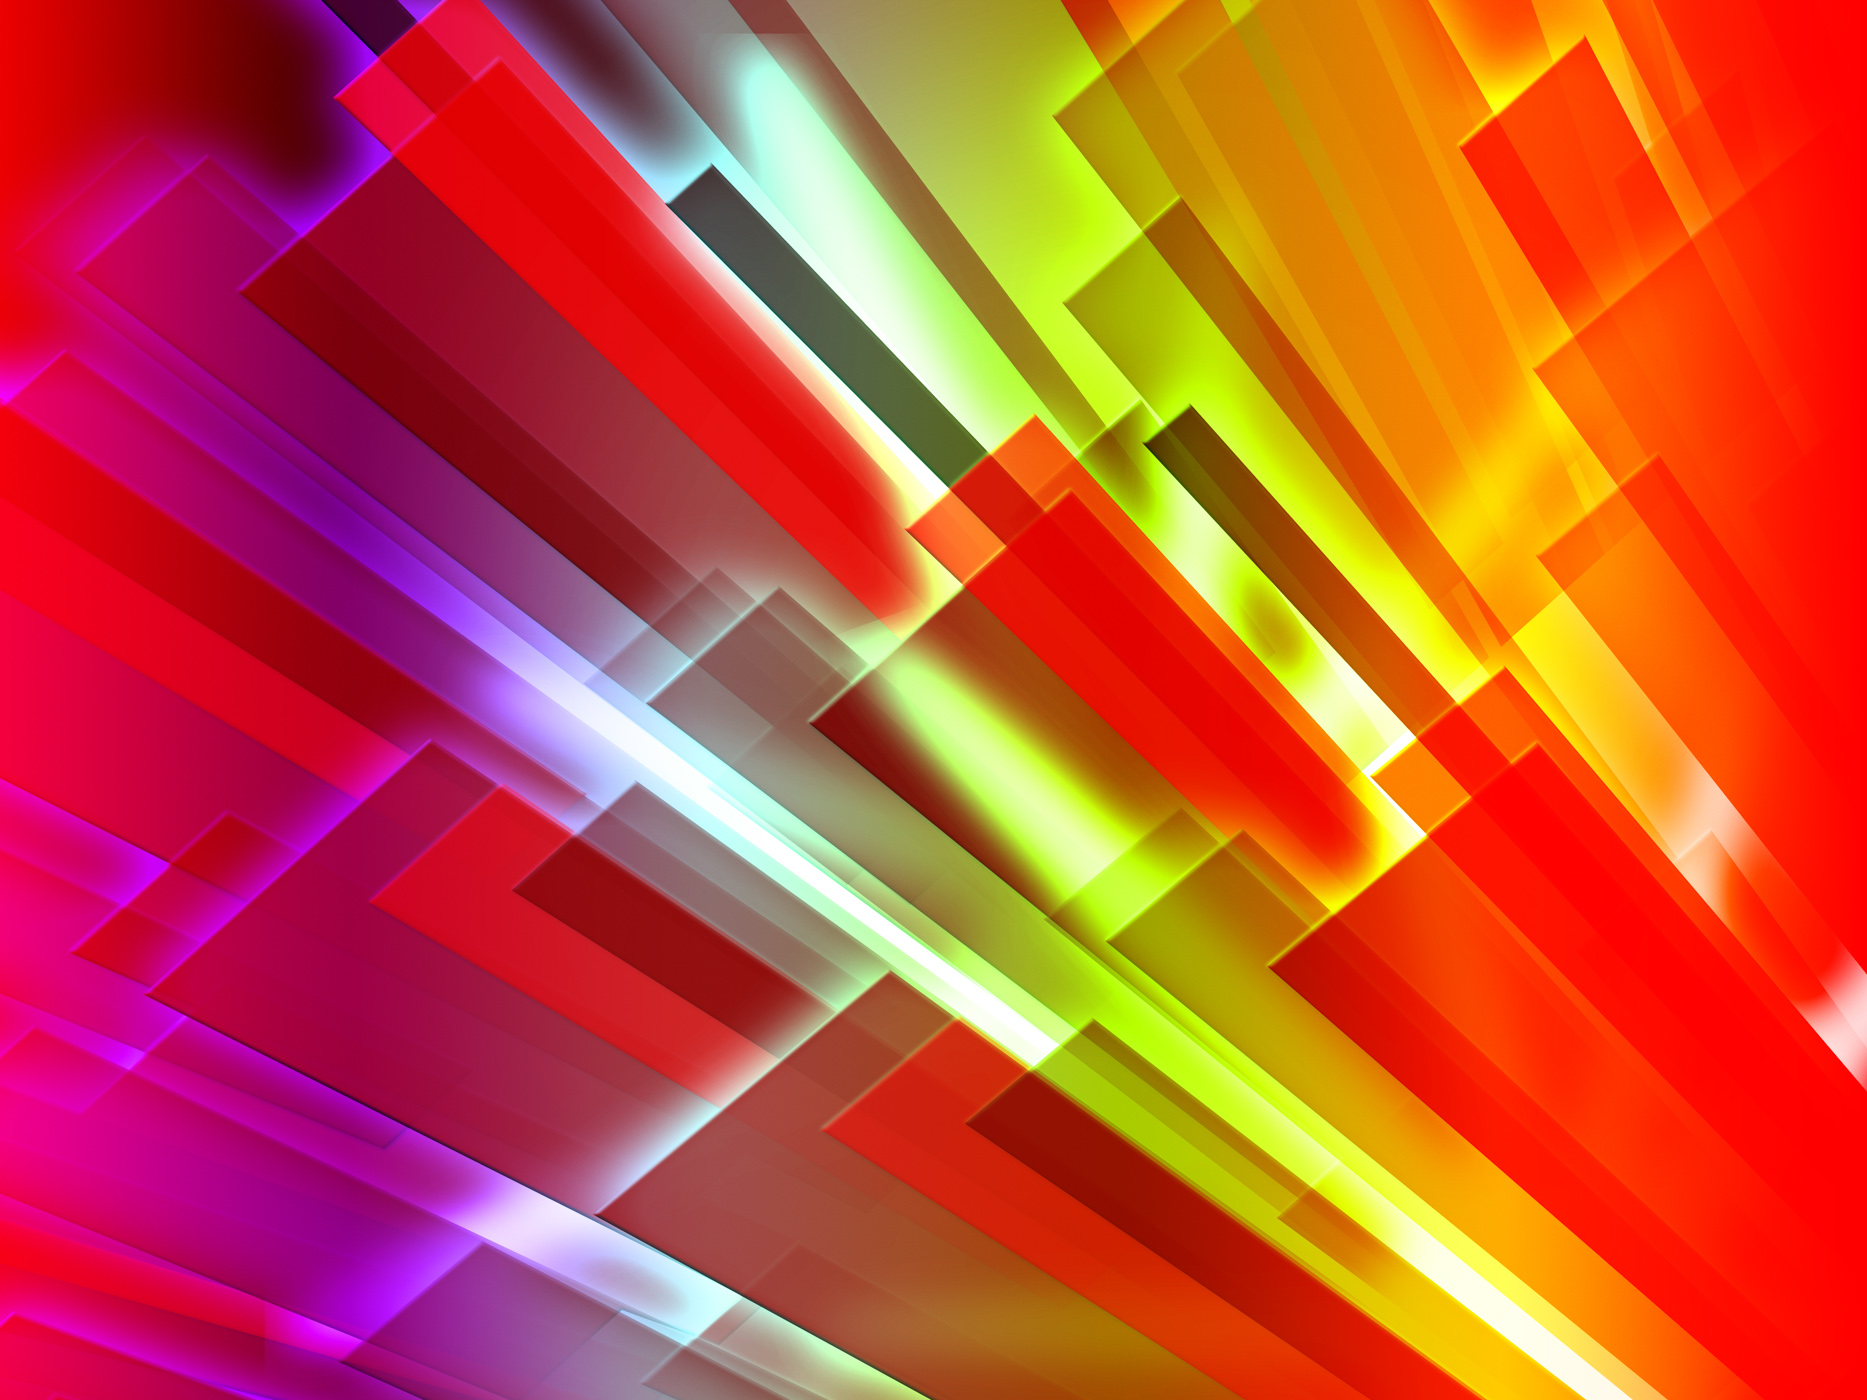 Colourful bars background shows graphic design or digital art photo